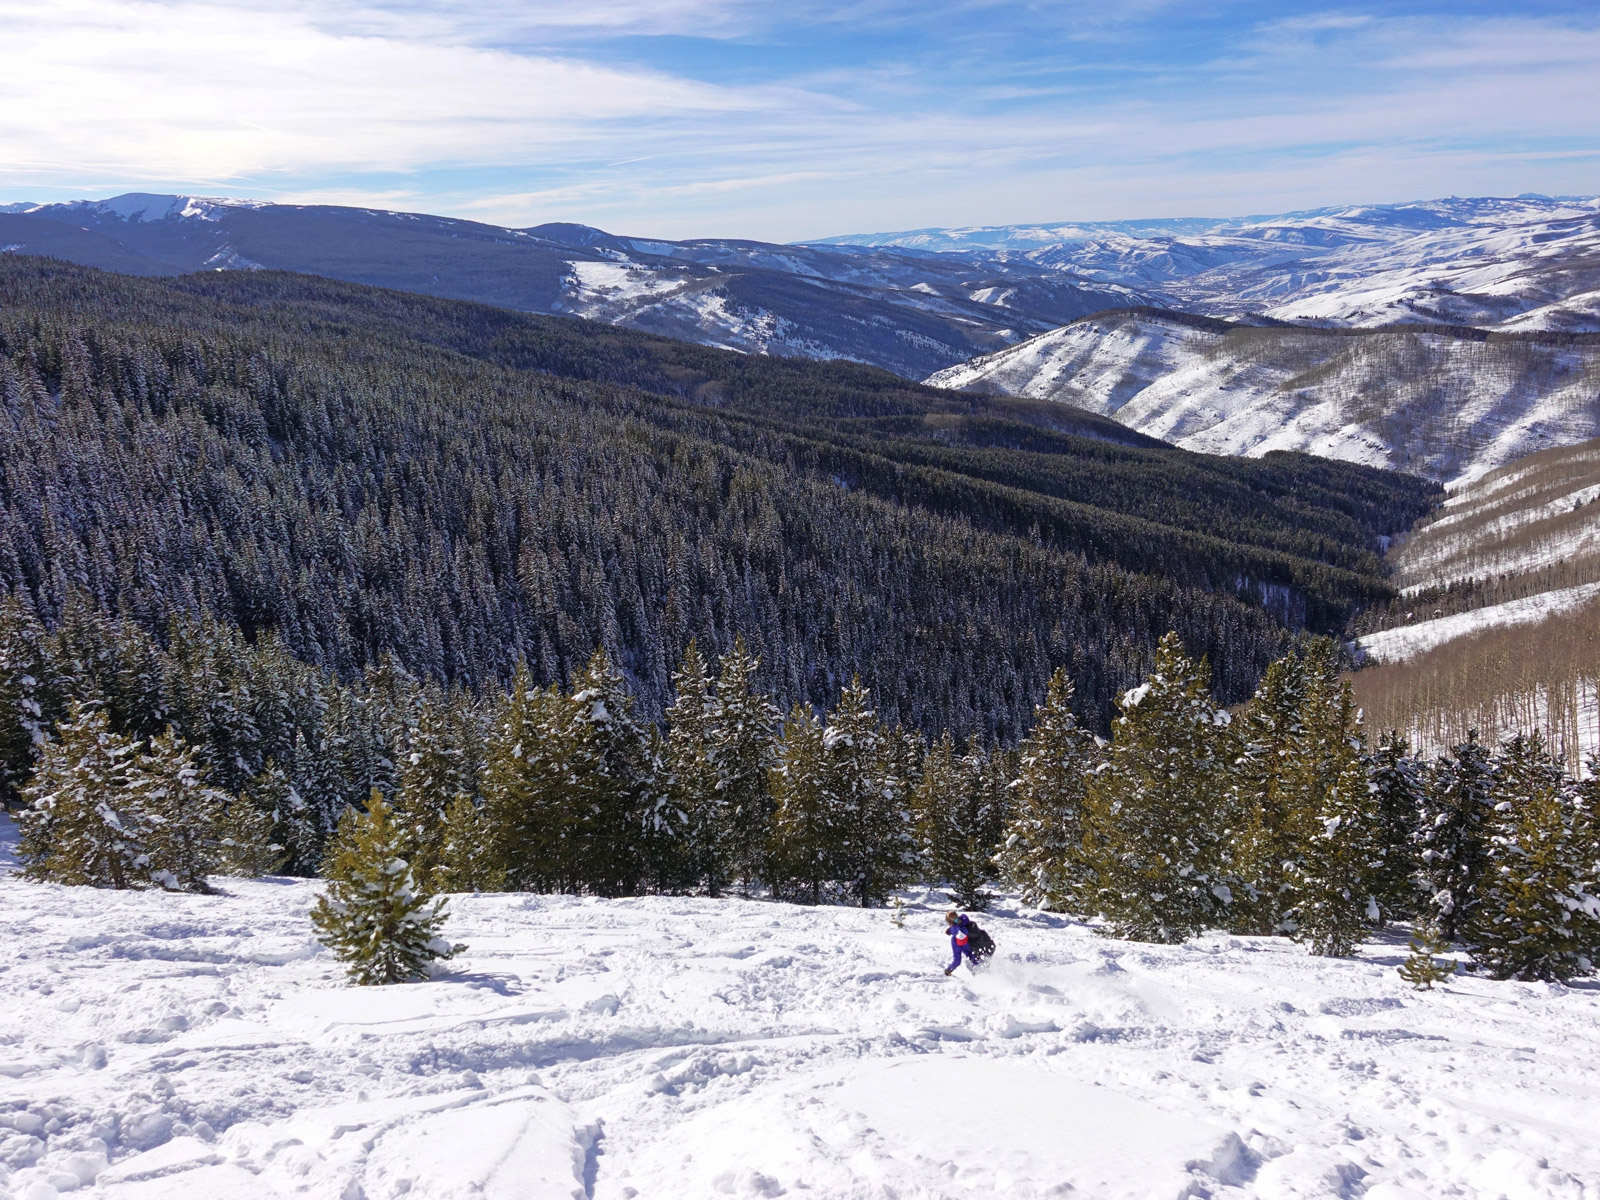 Skiing the valley